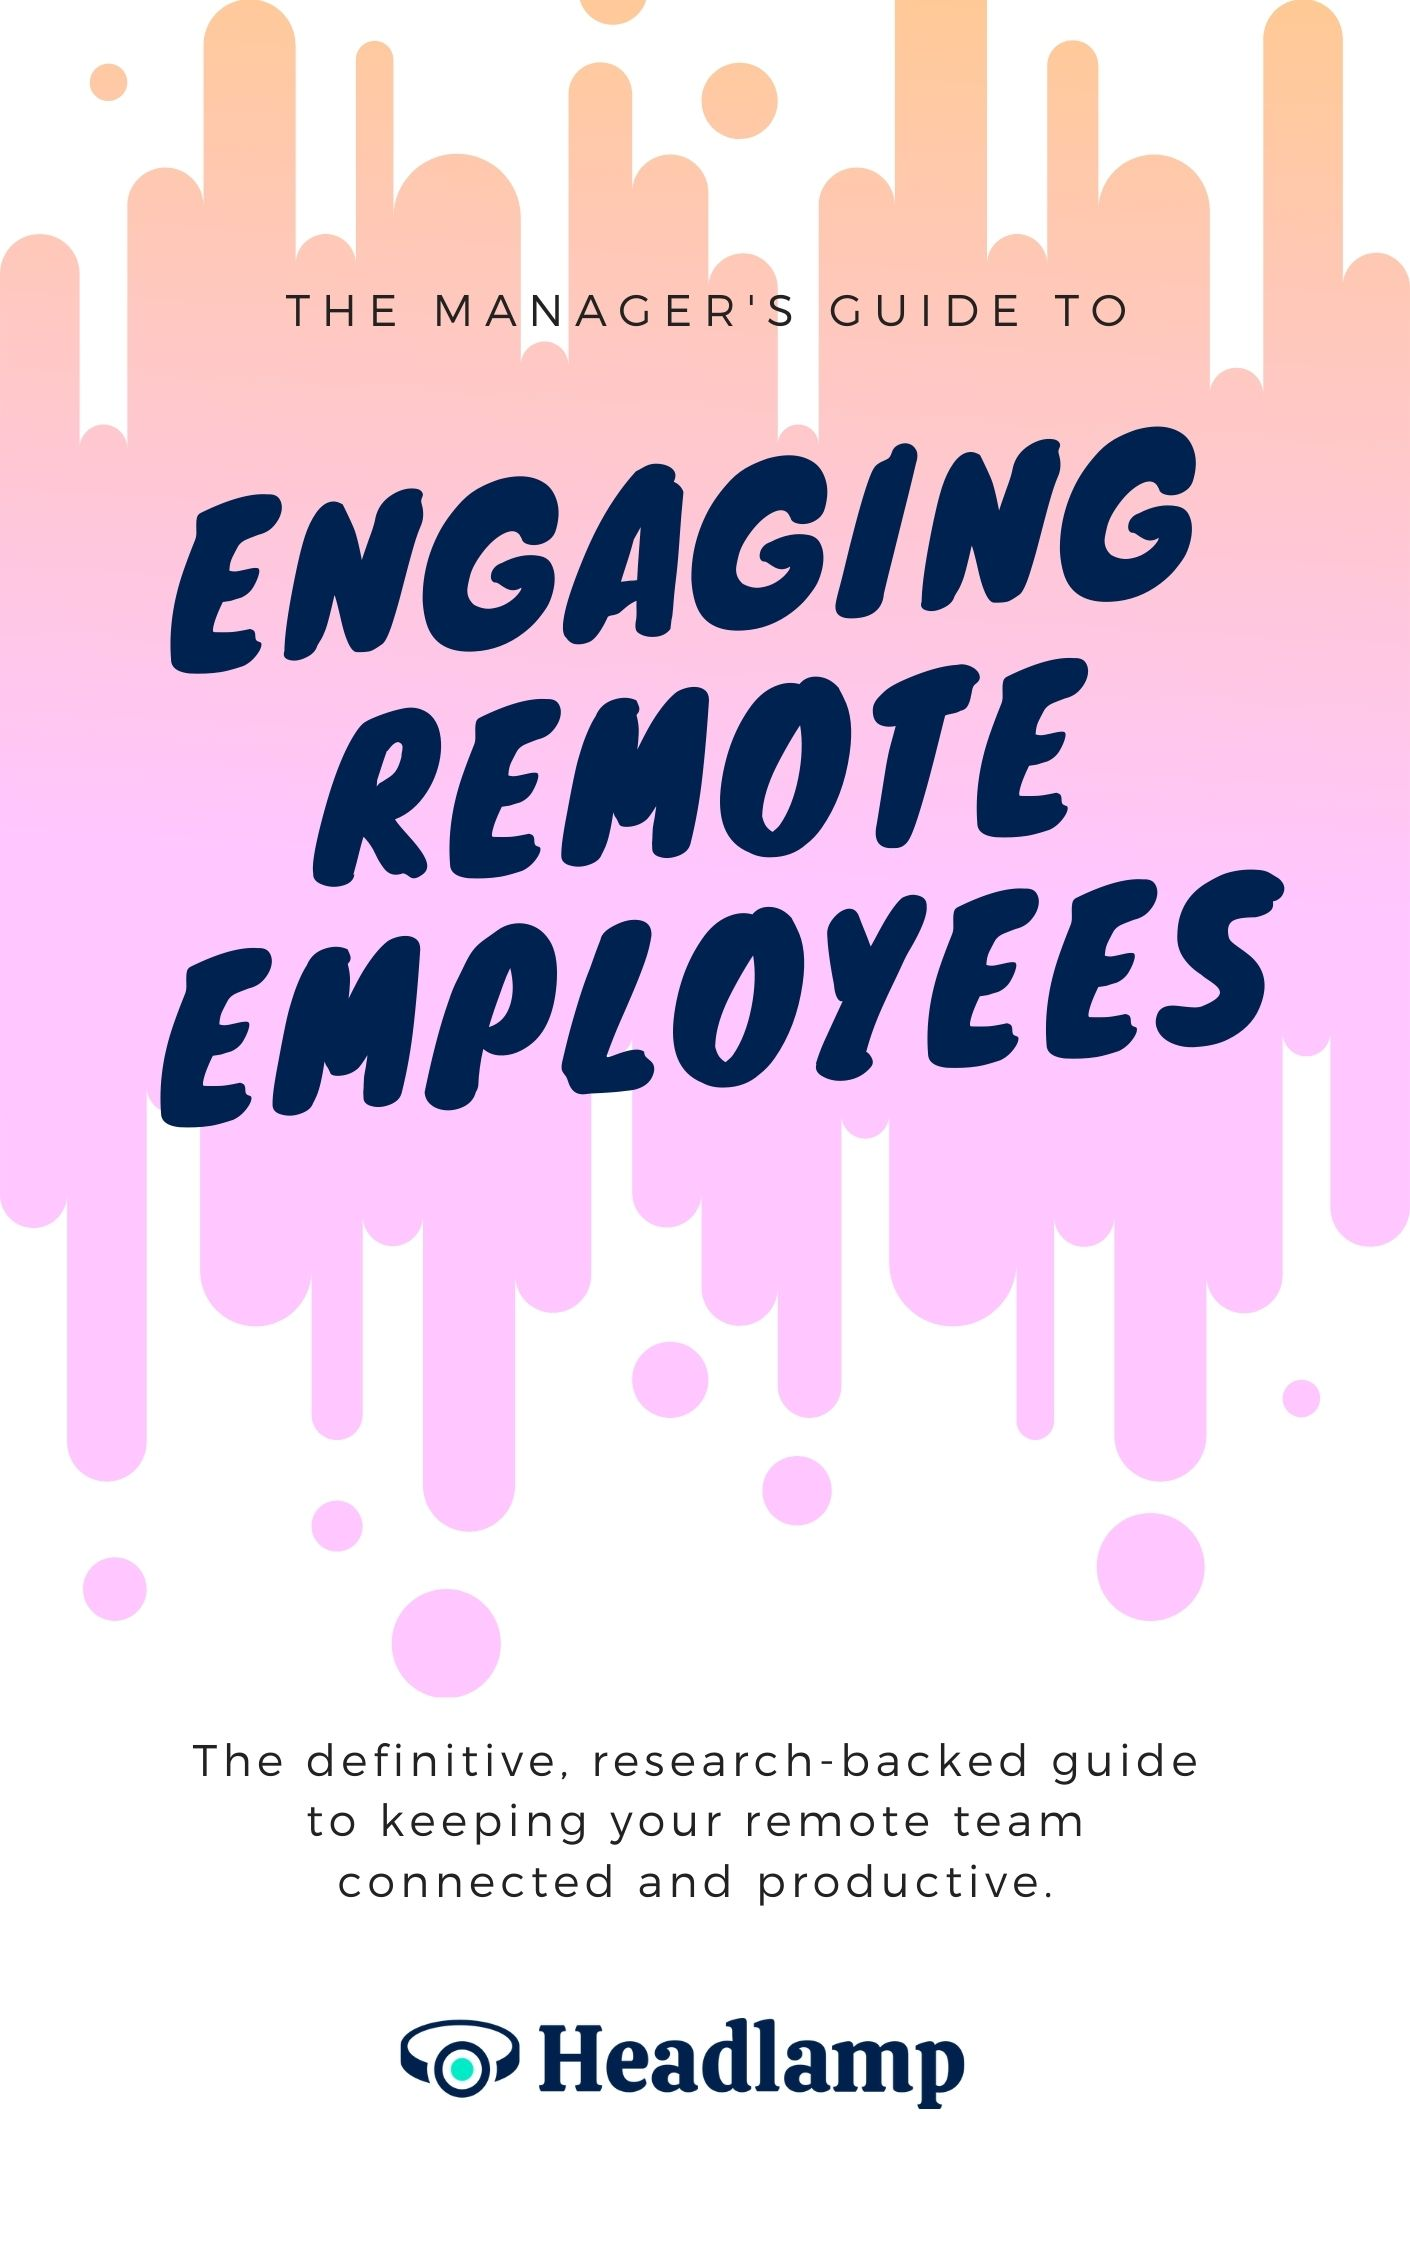 The Manager's Guide to Remote Employee Engagement